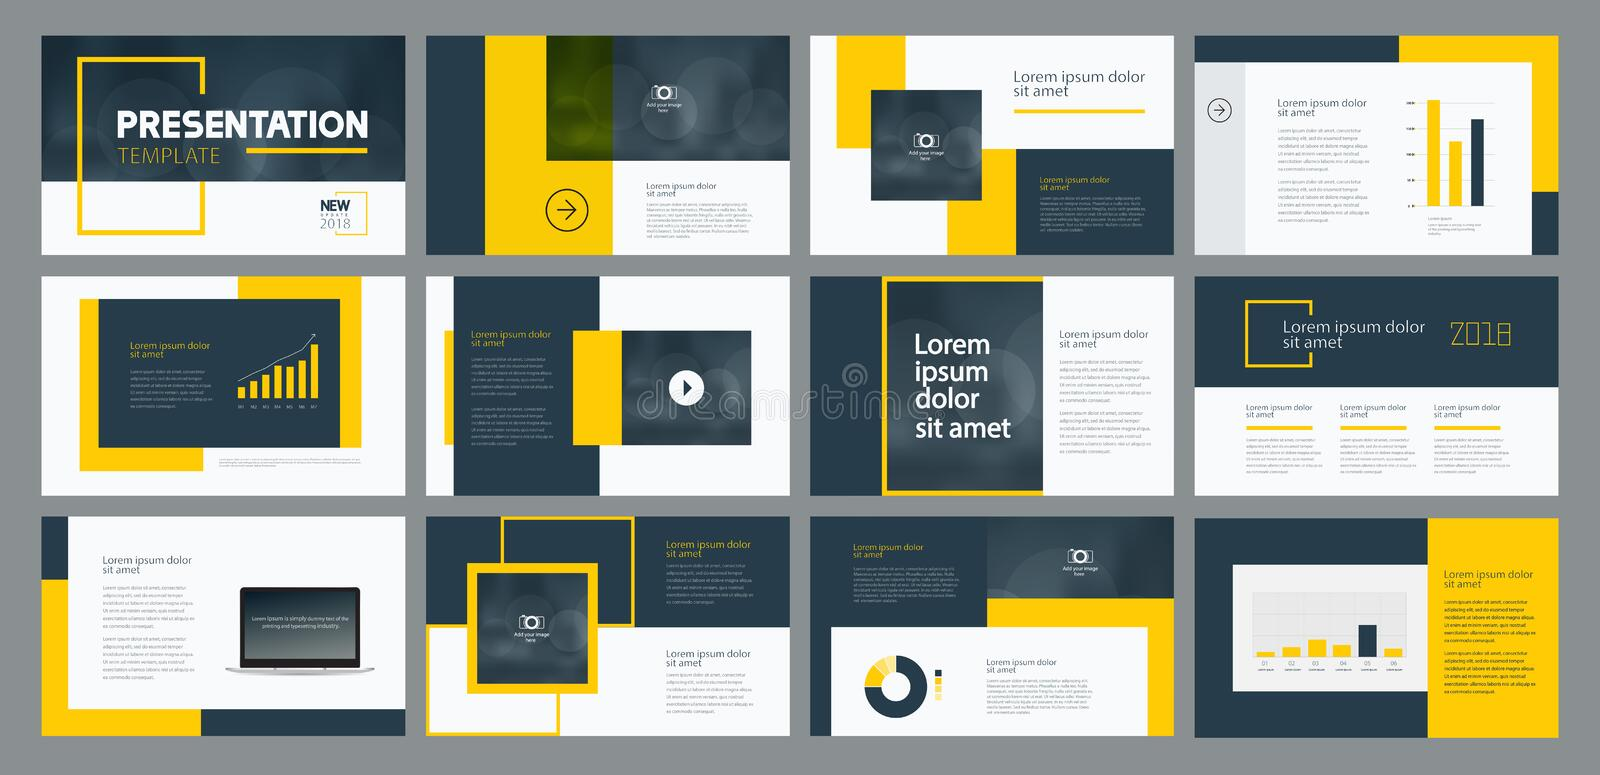 Business presentation template design and page layout design for brochure ,annual report and company profile vector illustration